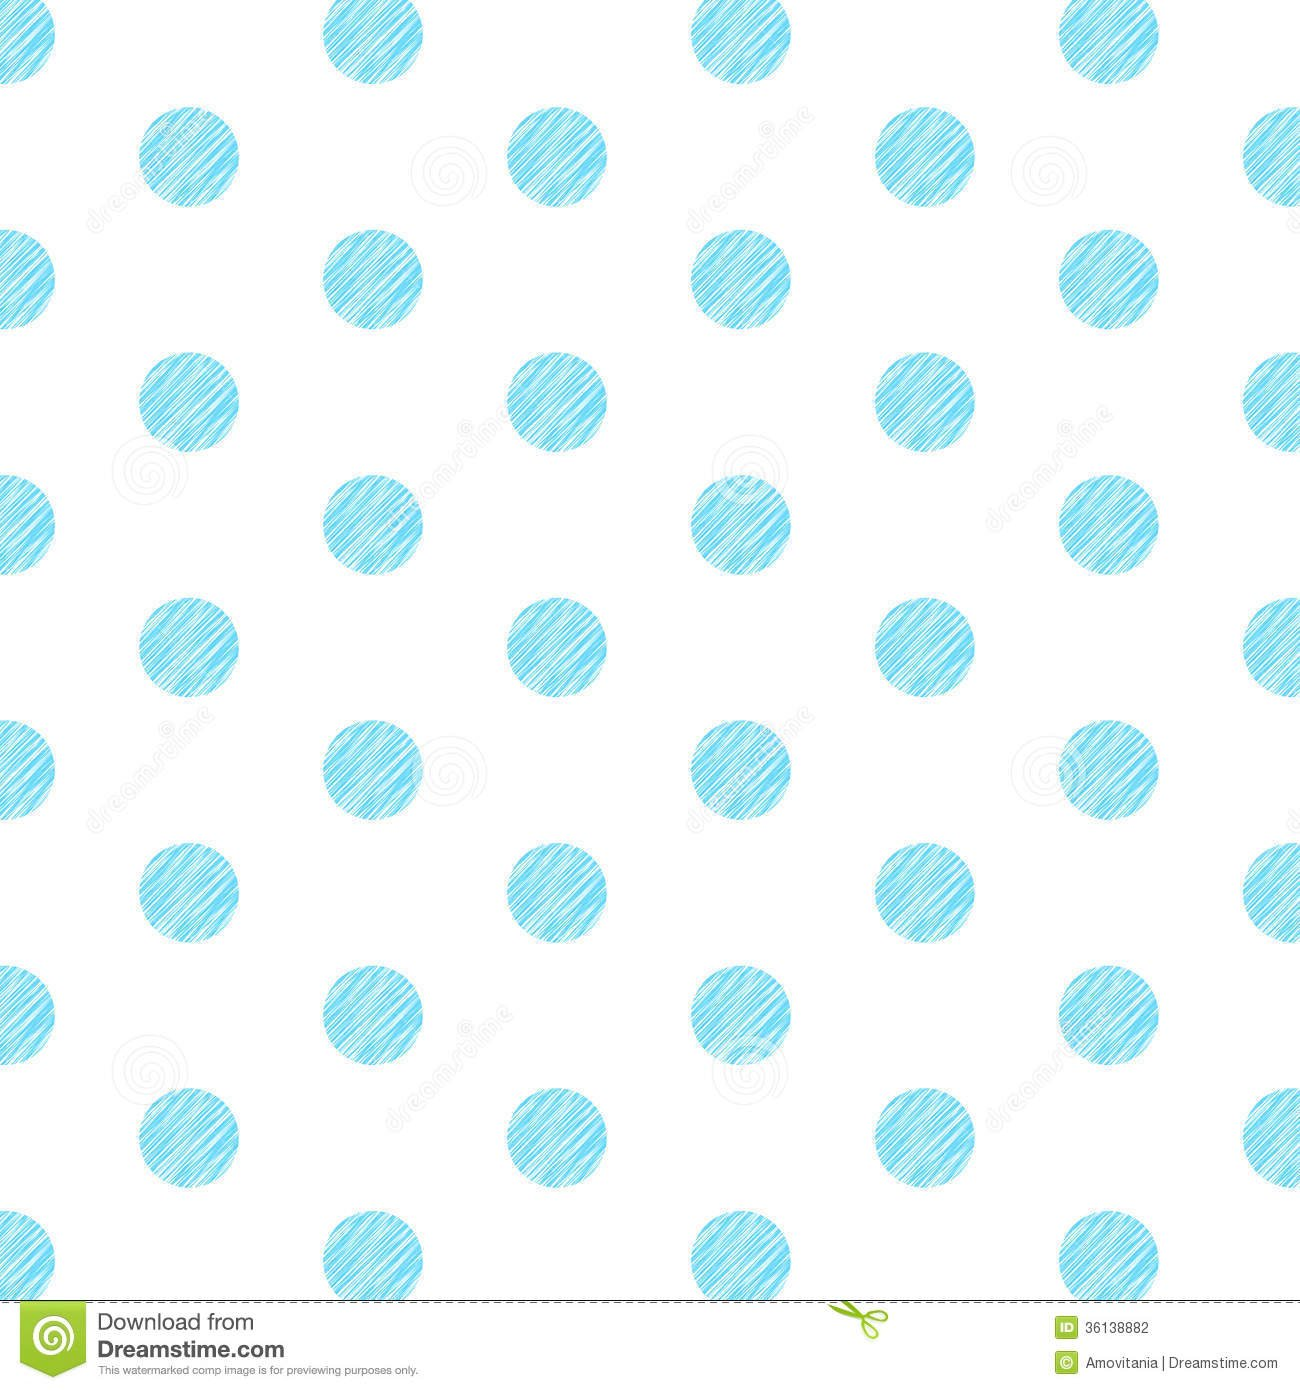 Blue Polka Dot Wallpaper - WallpaperSafari